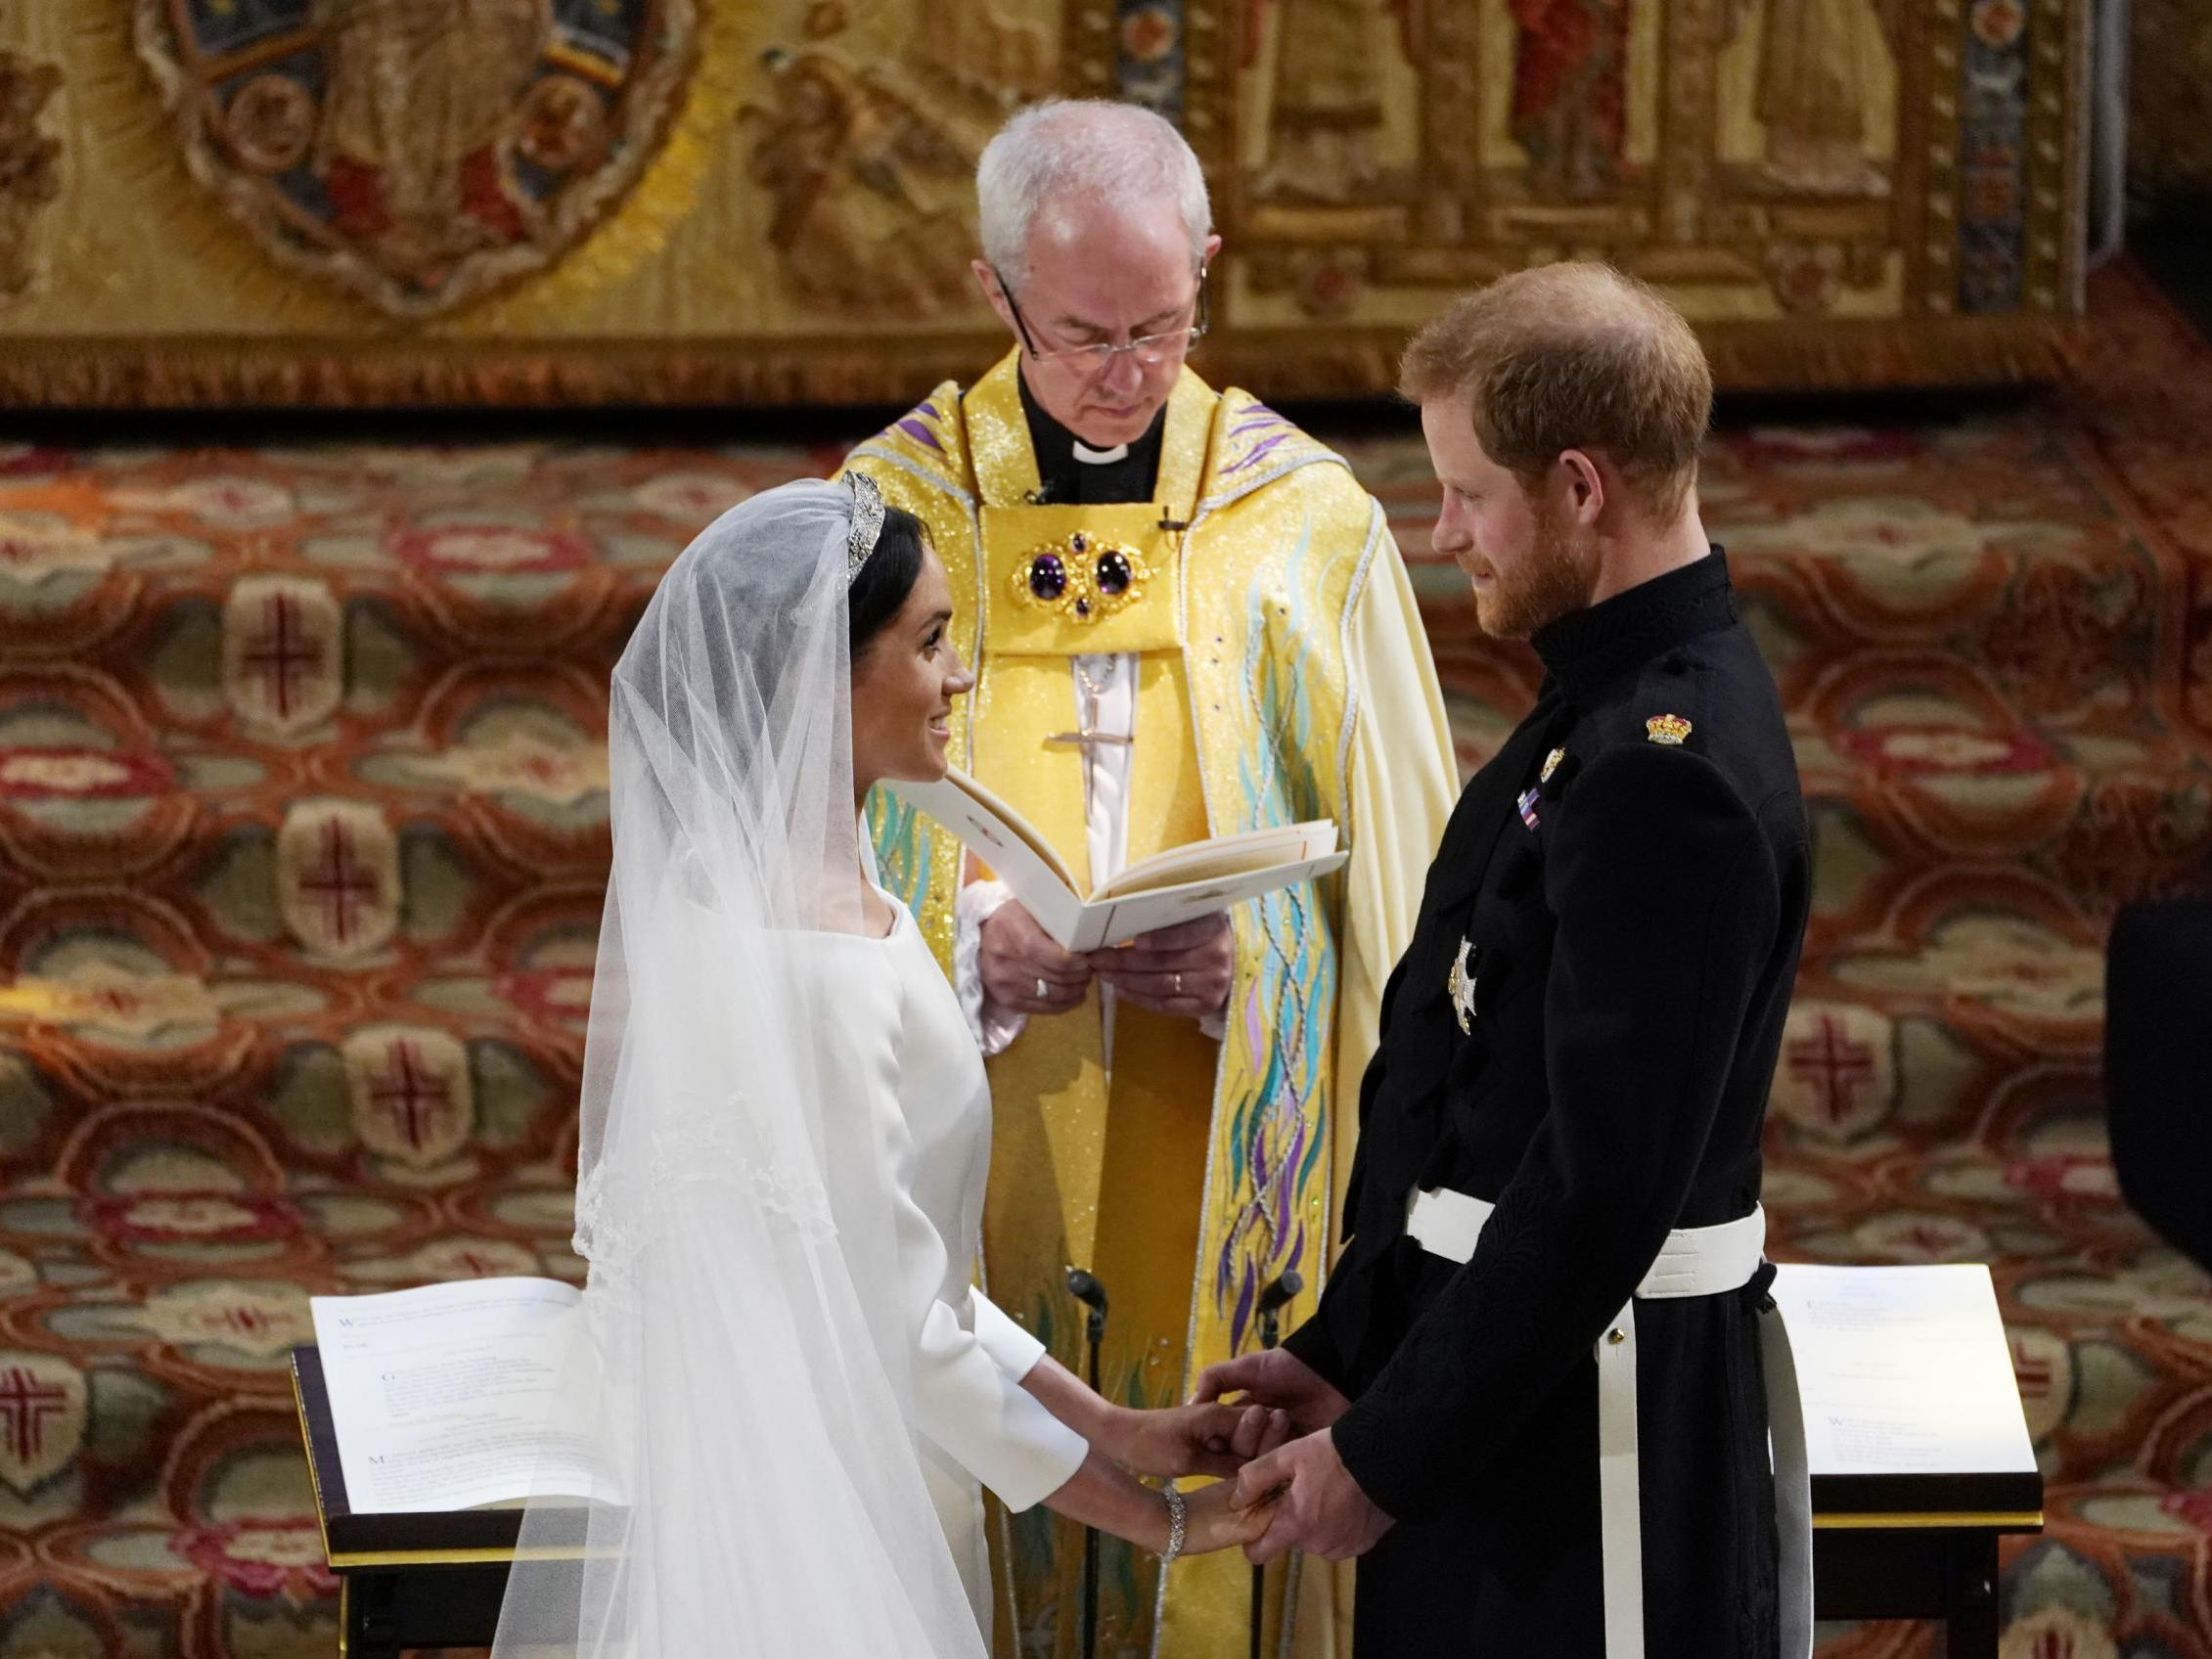 Archbishop of Canterbury praises 'remarkable' Meghan: 'Being in royal family is a life sentence'